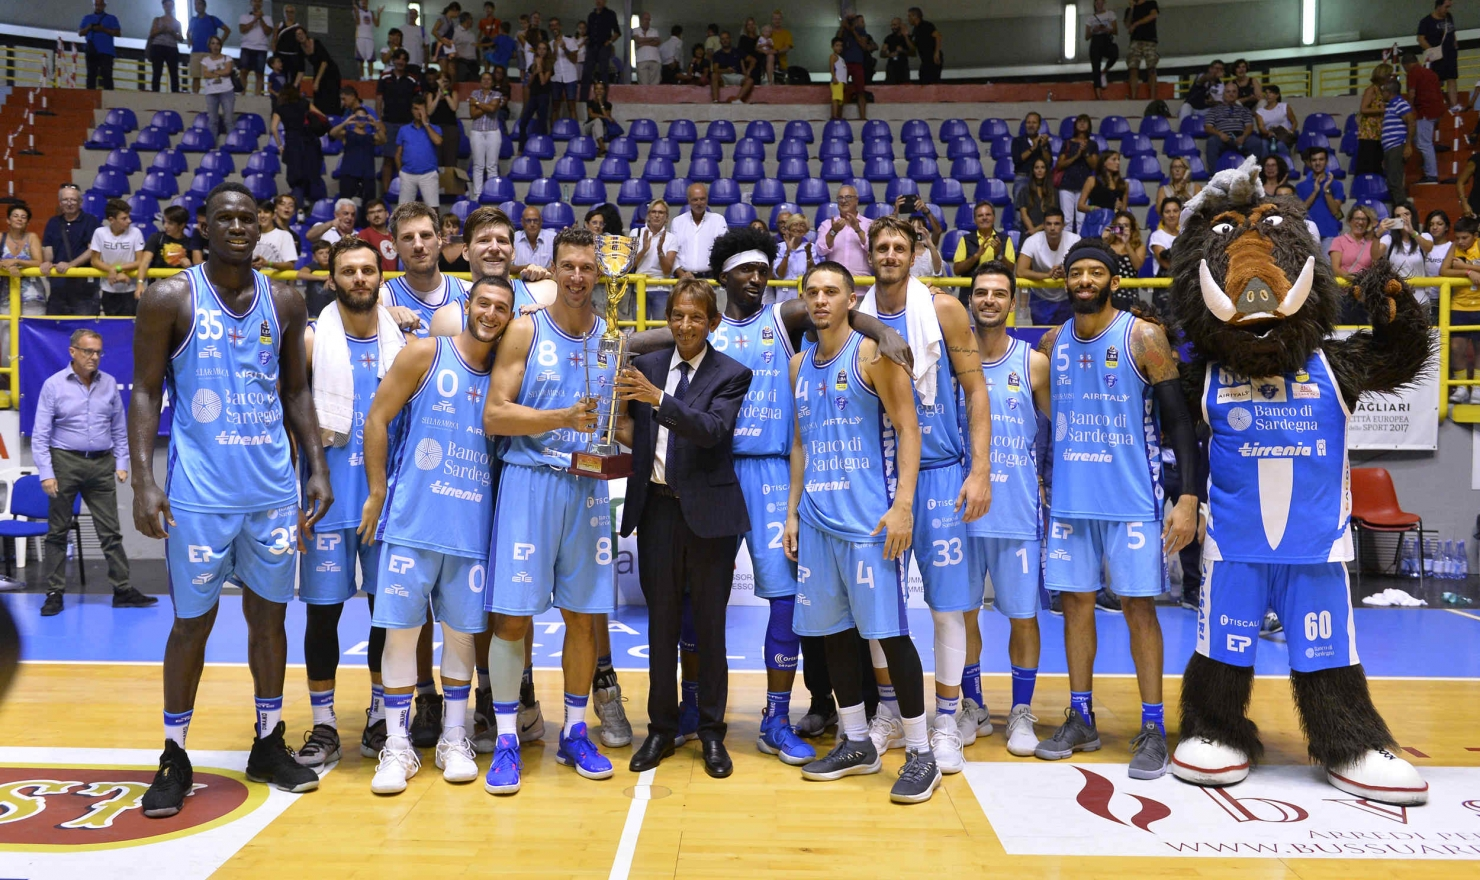 La Dinamo ha superato il Limoges per 73 a 65 e si è aggiudicata per il 2° anno consecutivo l'International Tournament City of Cagliari.